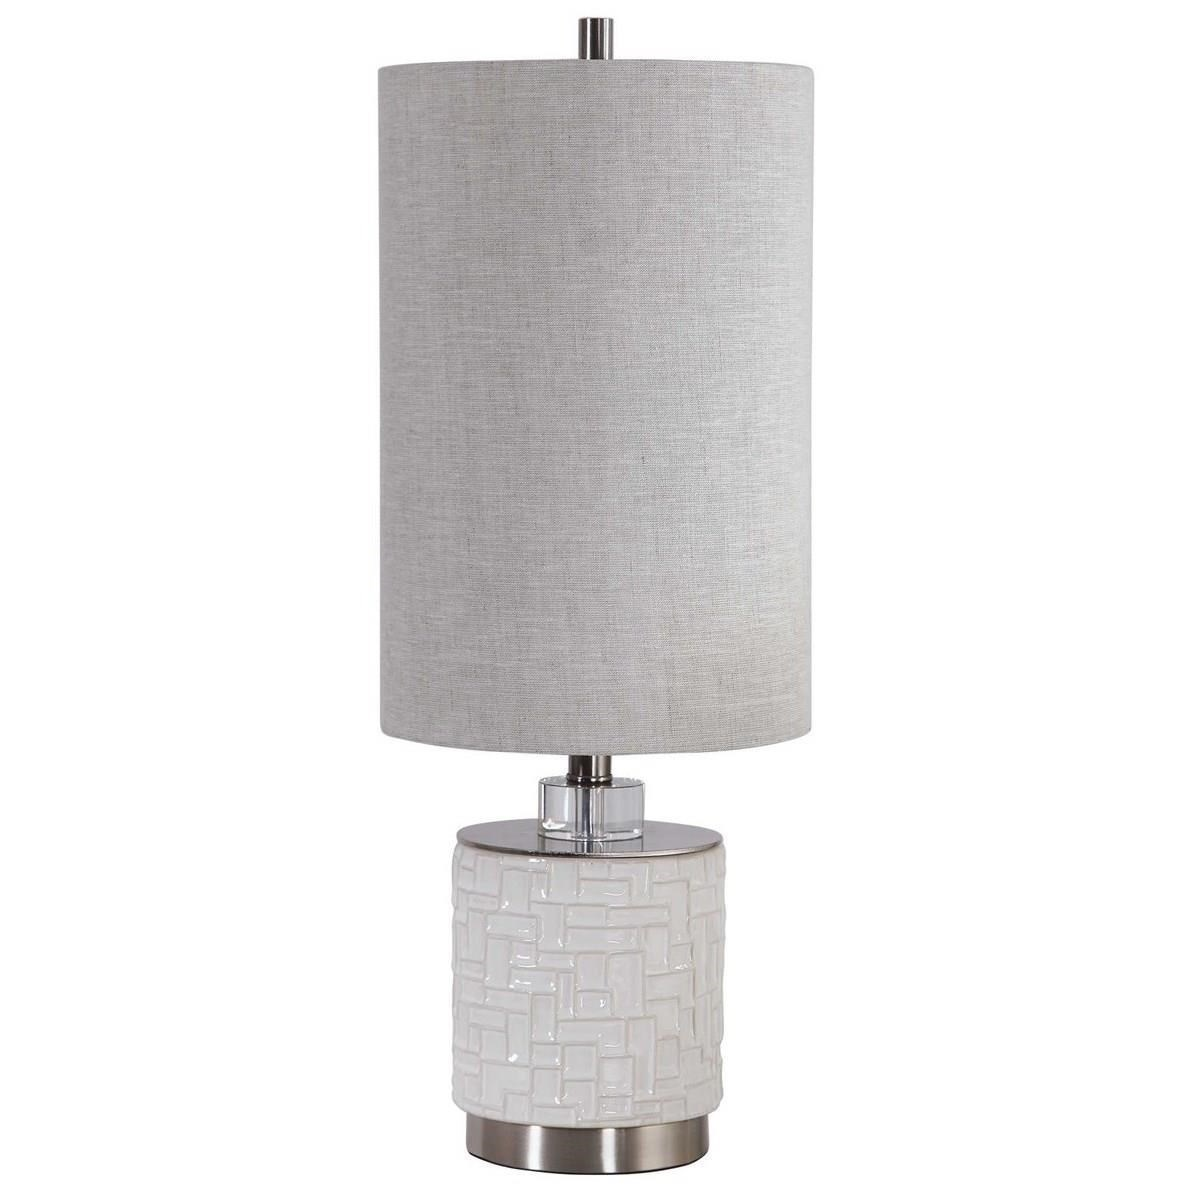 Accent Lamps Elyn Glossy White Accent Lamp by Uttermost at Del Sol Furniture